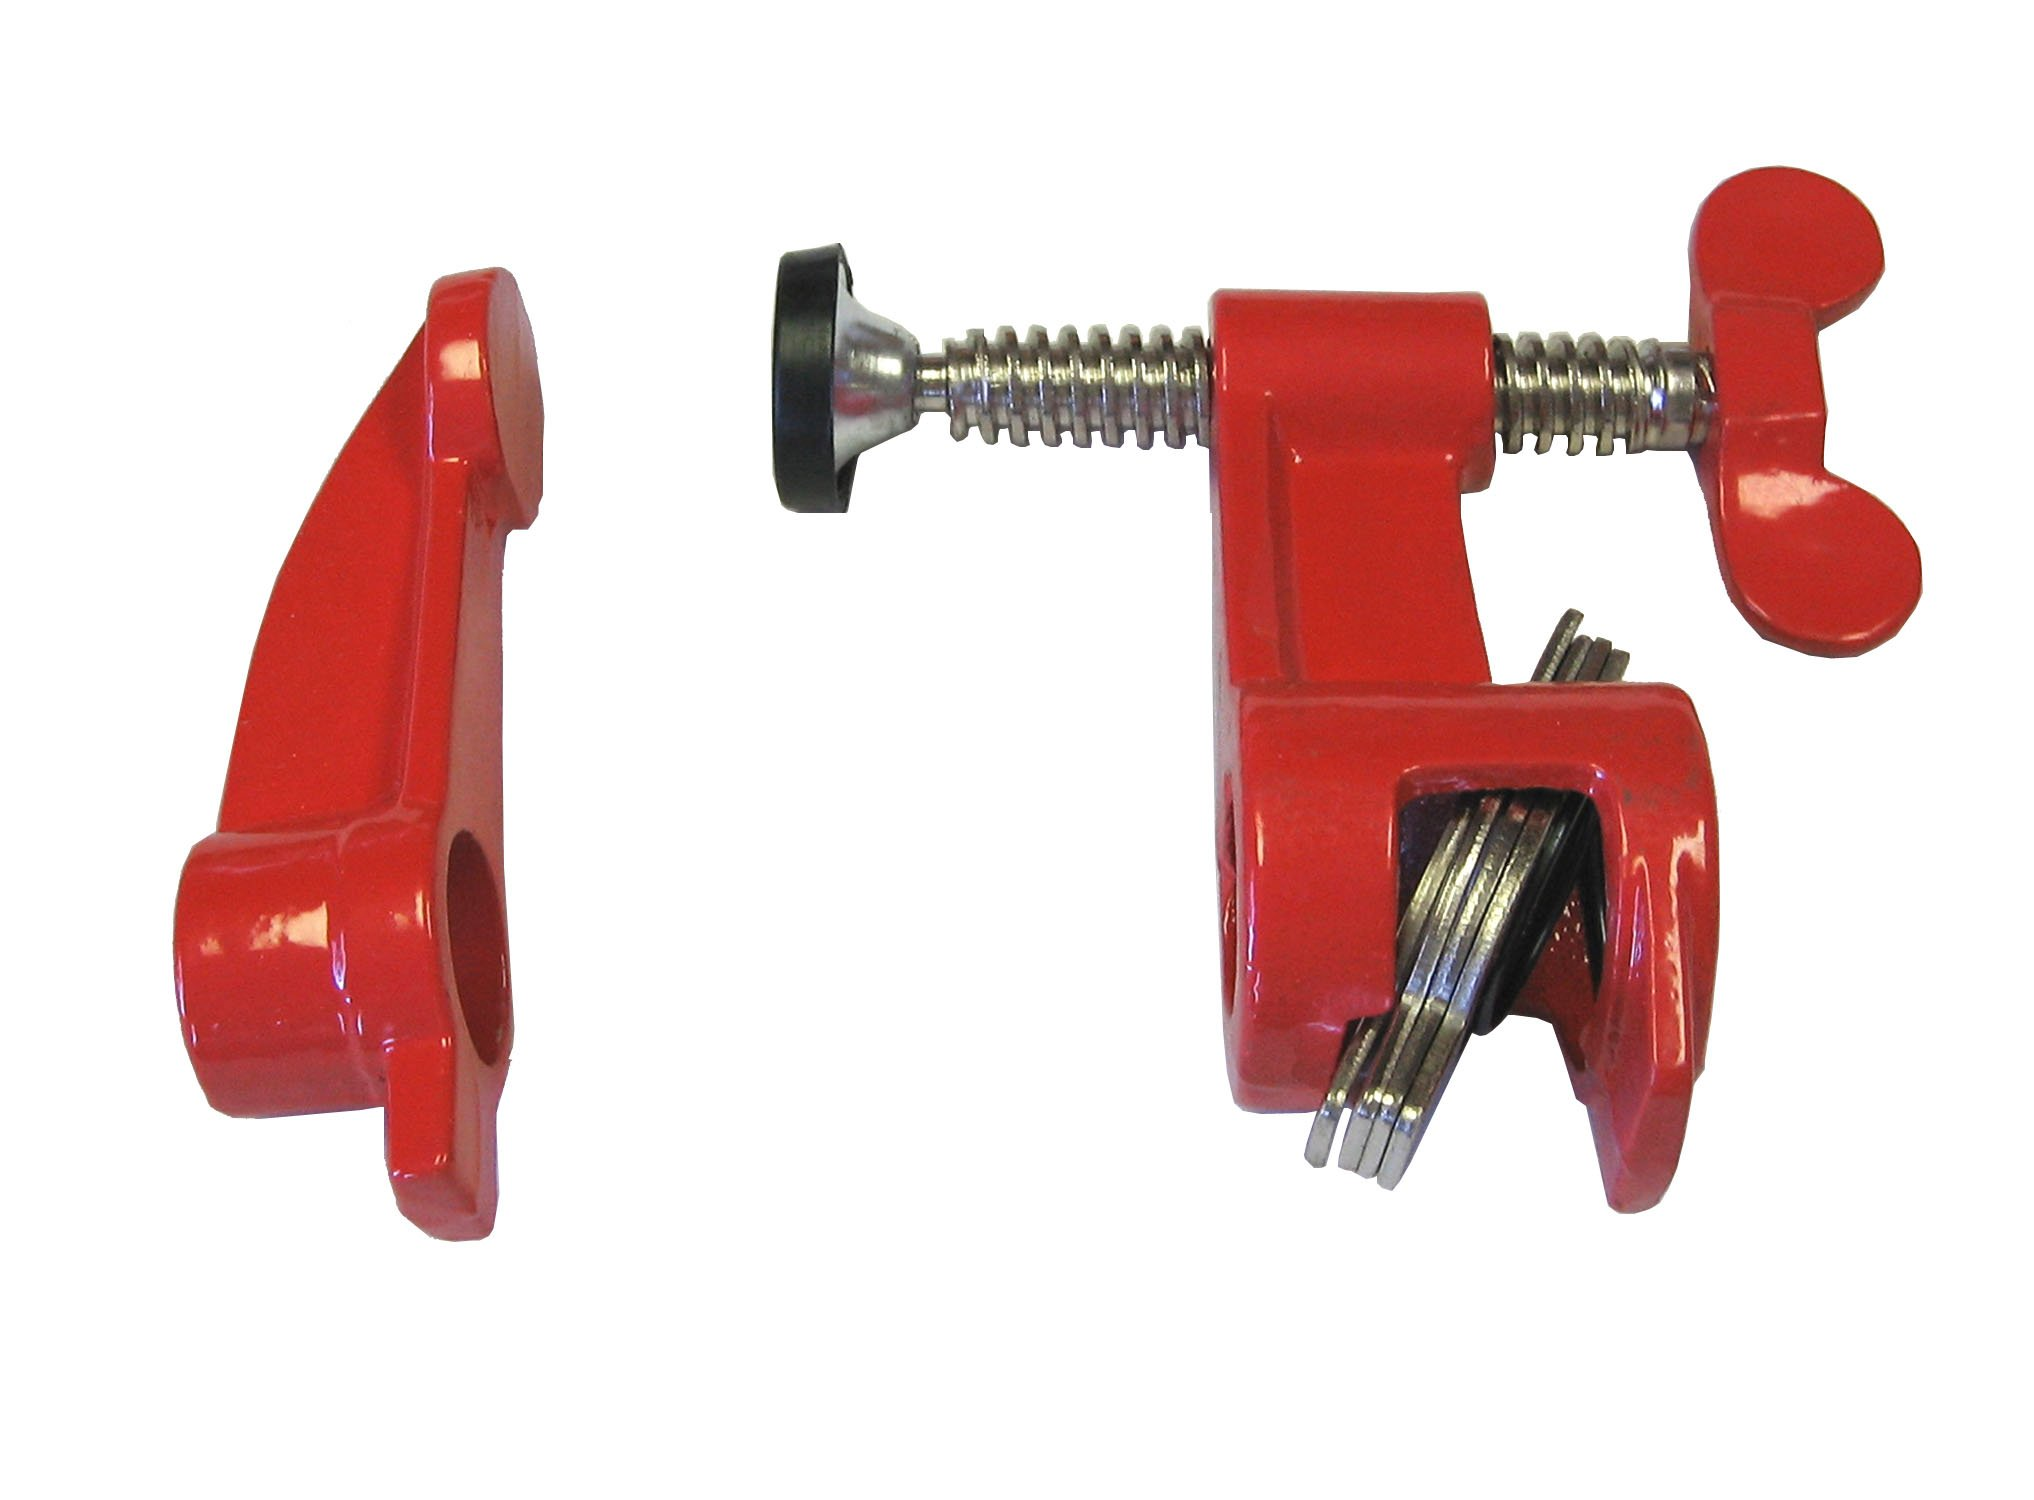 Bessey PC-34DR 3/4-Inch Deep Reach Pipe Clamp Fixture by Bessey